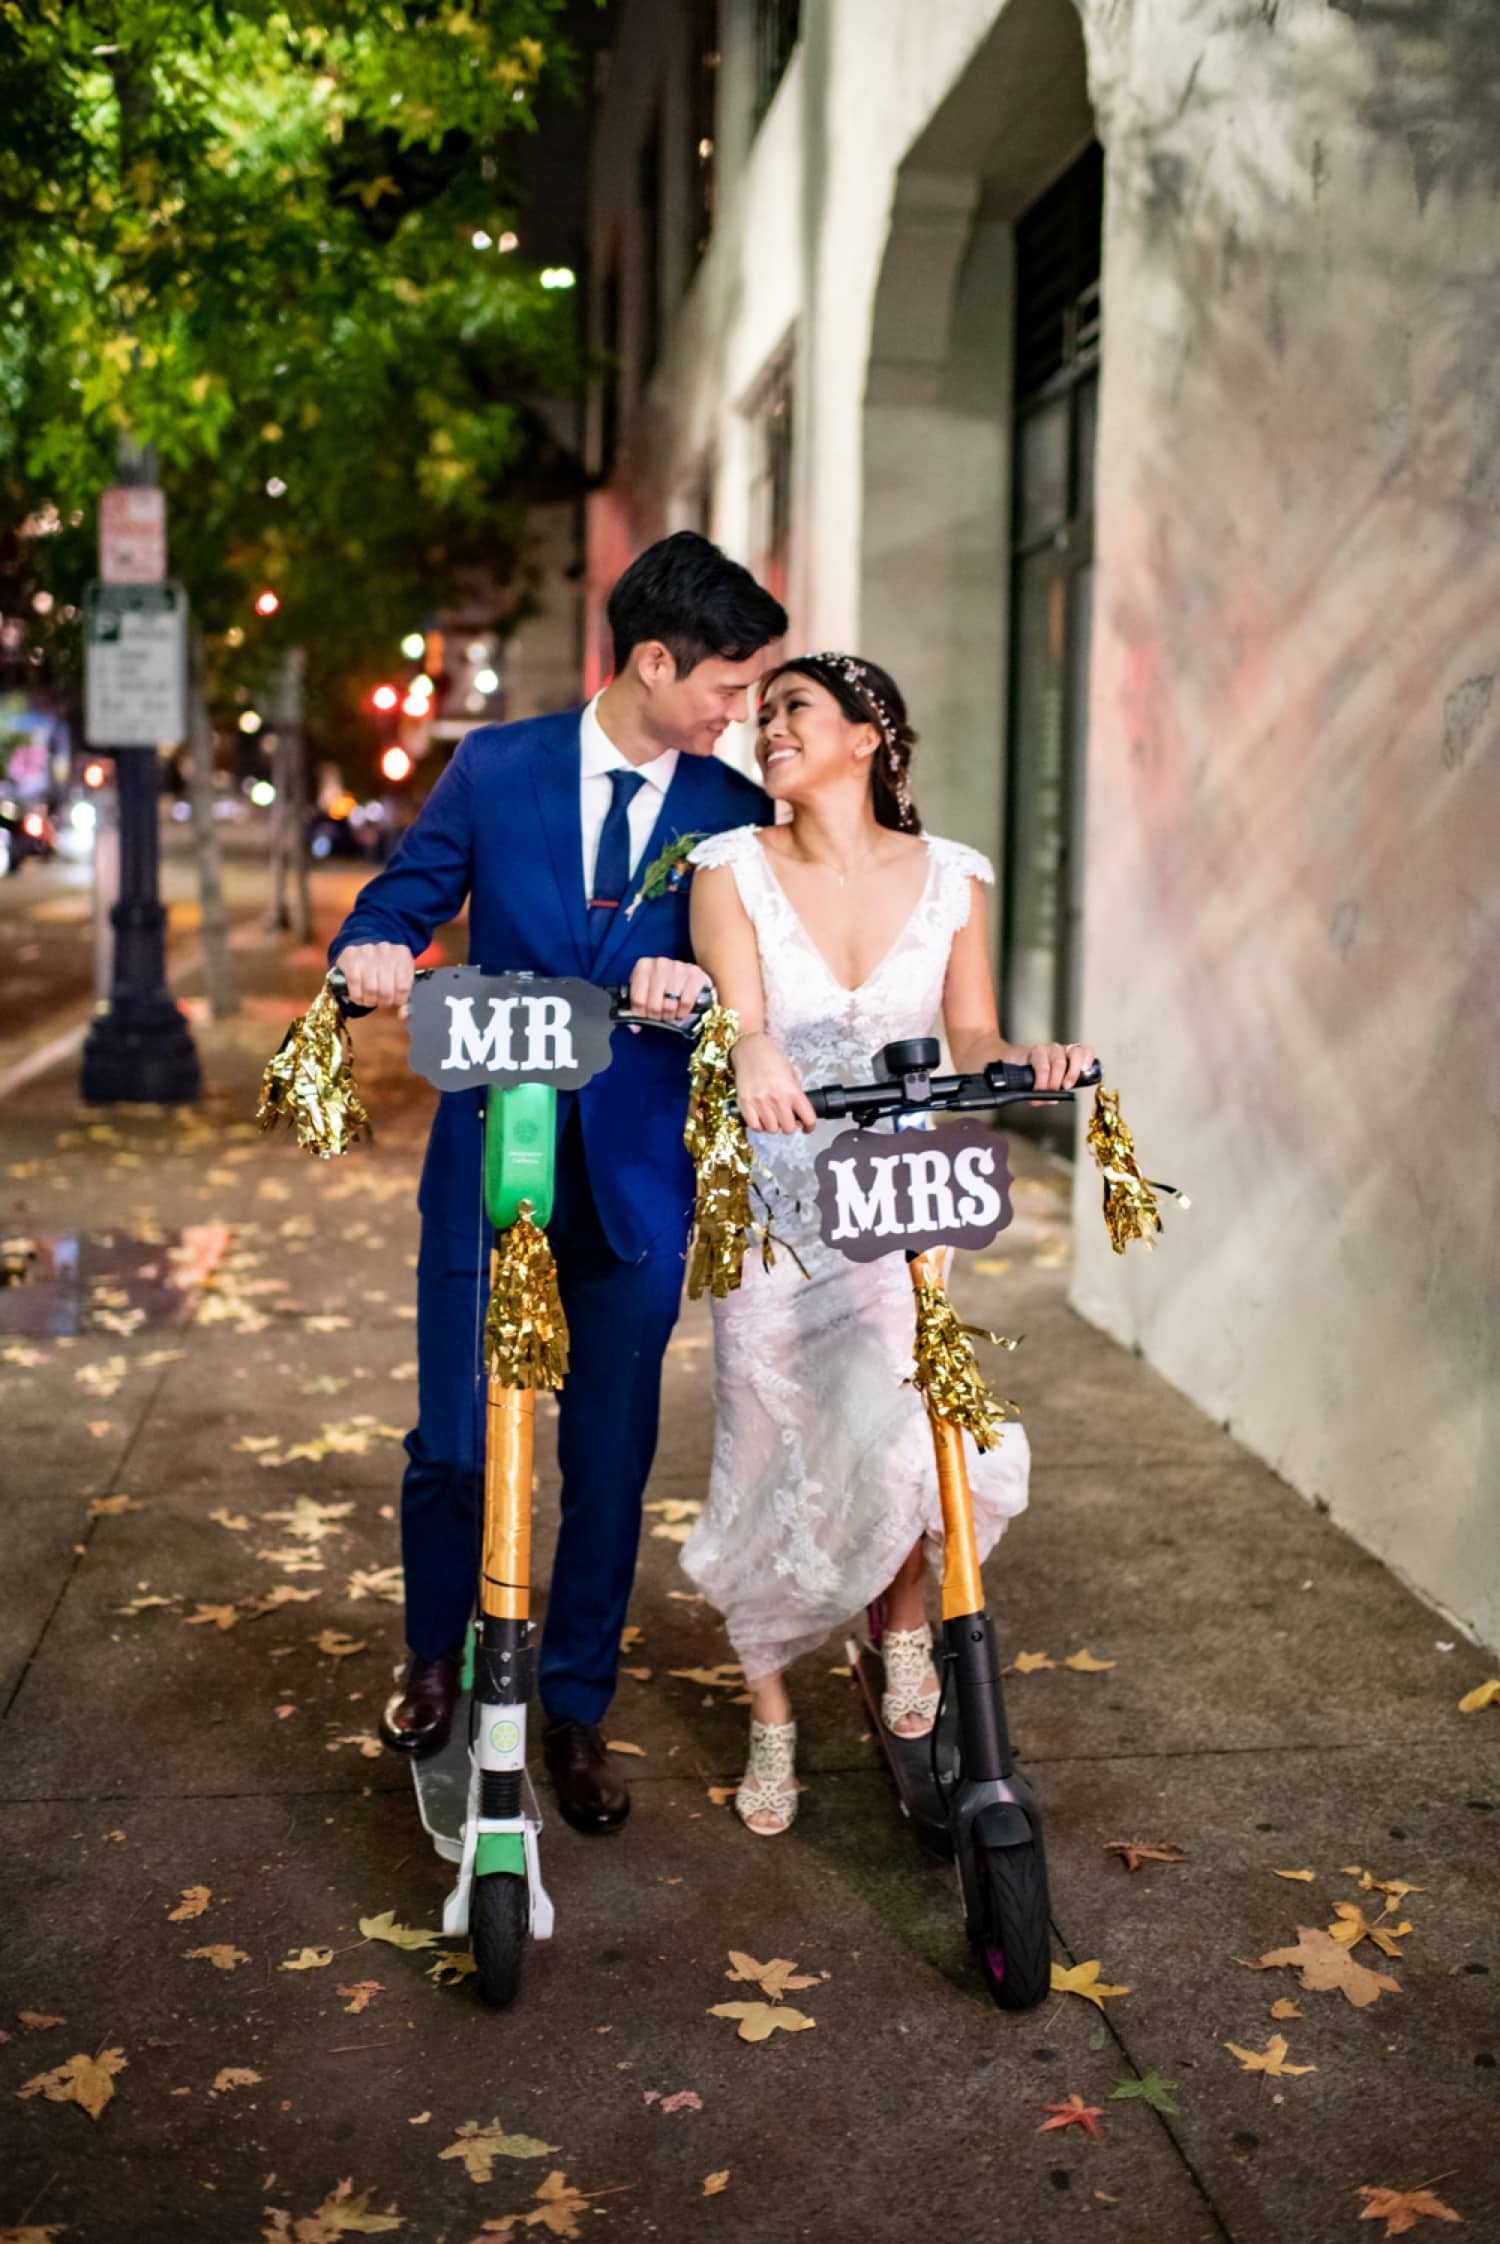 Bride and groom on decorated byrd scooters in San Diego.